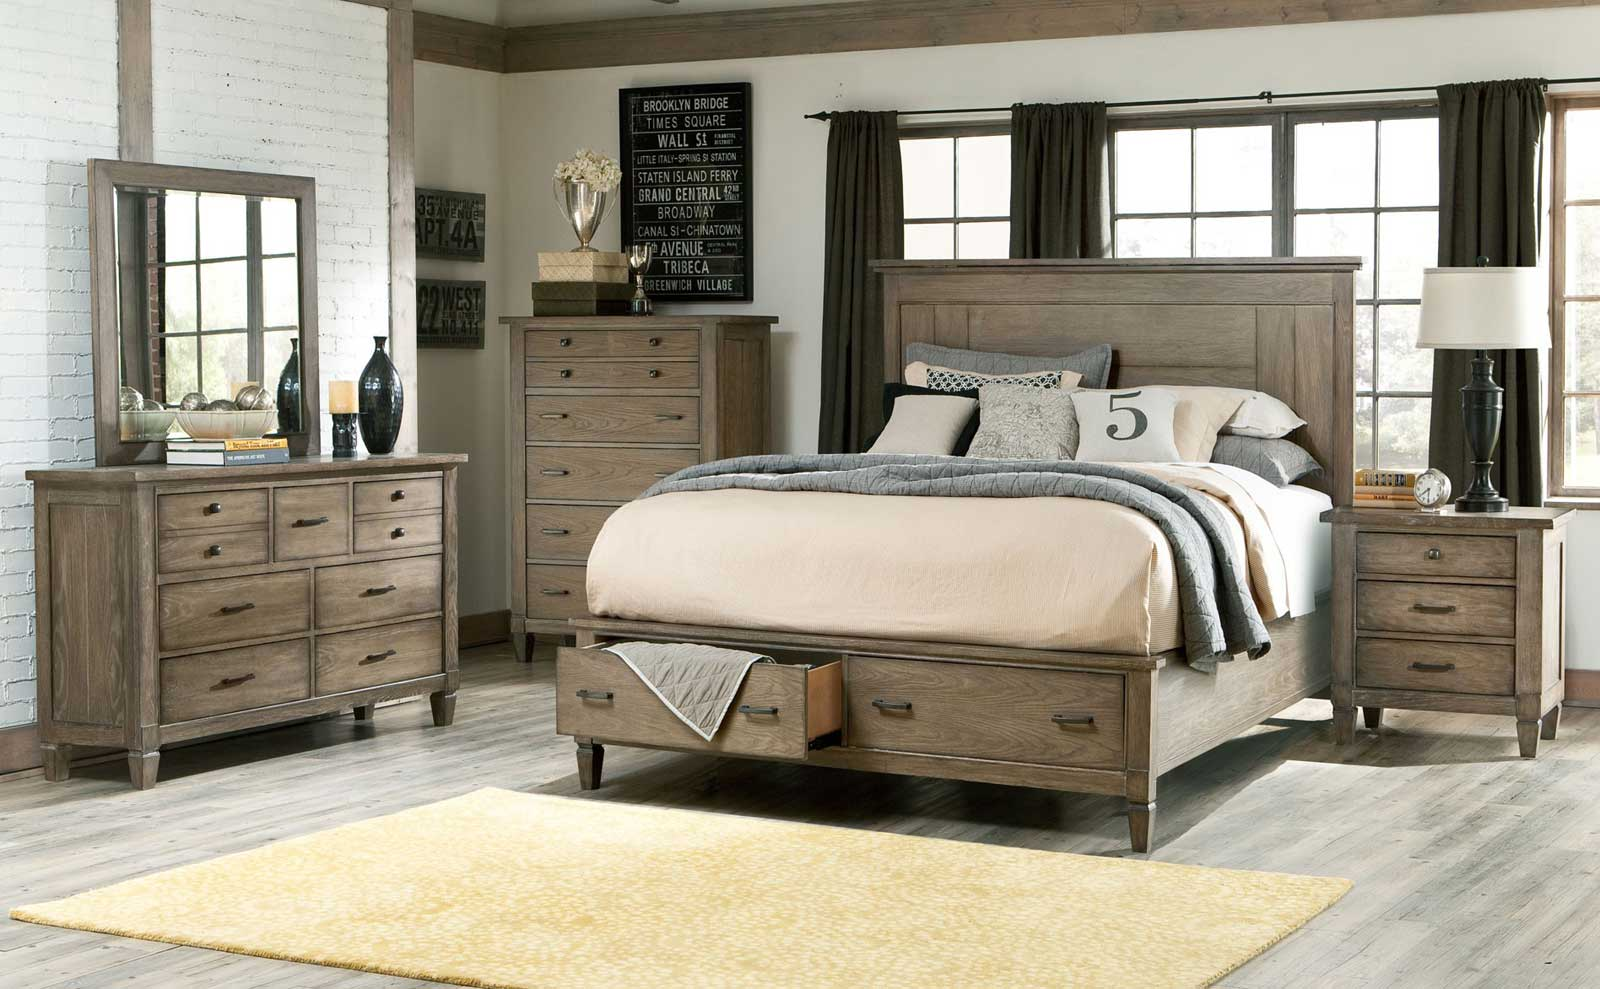 Why you should purchase king bedroom furniture sets